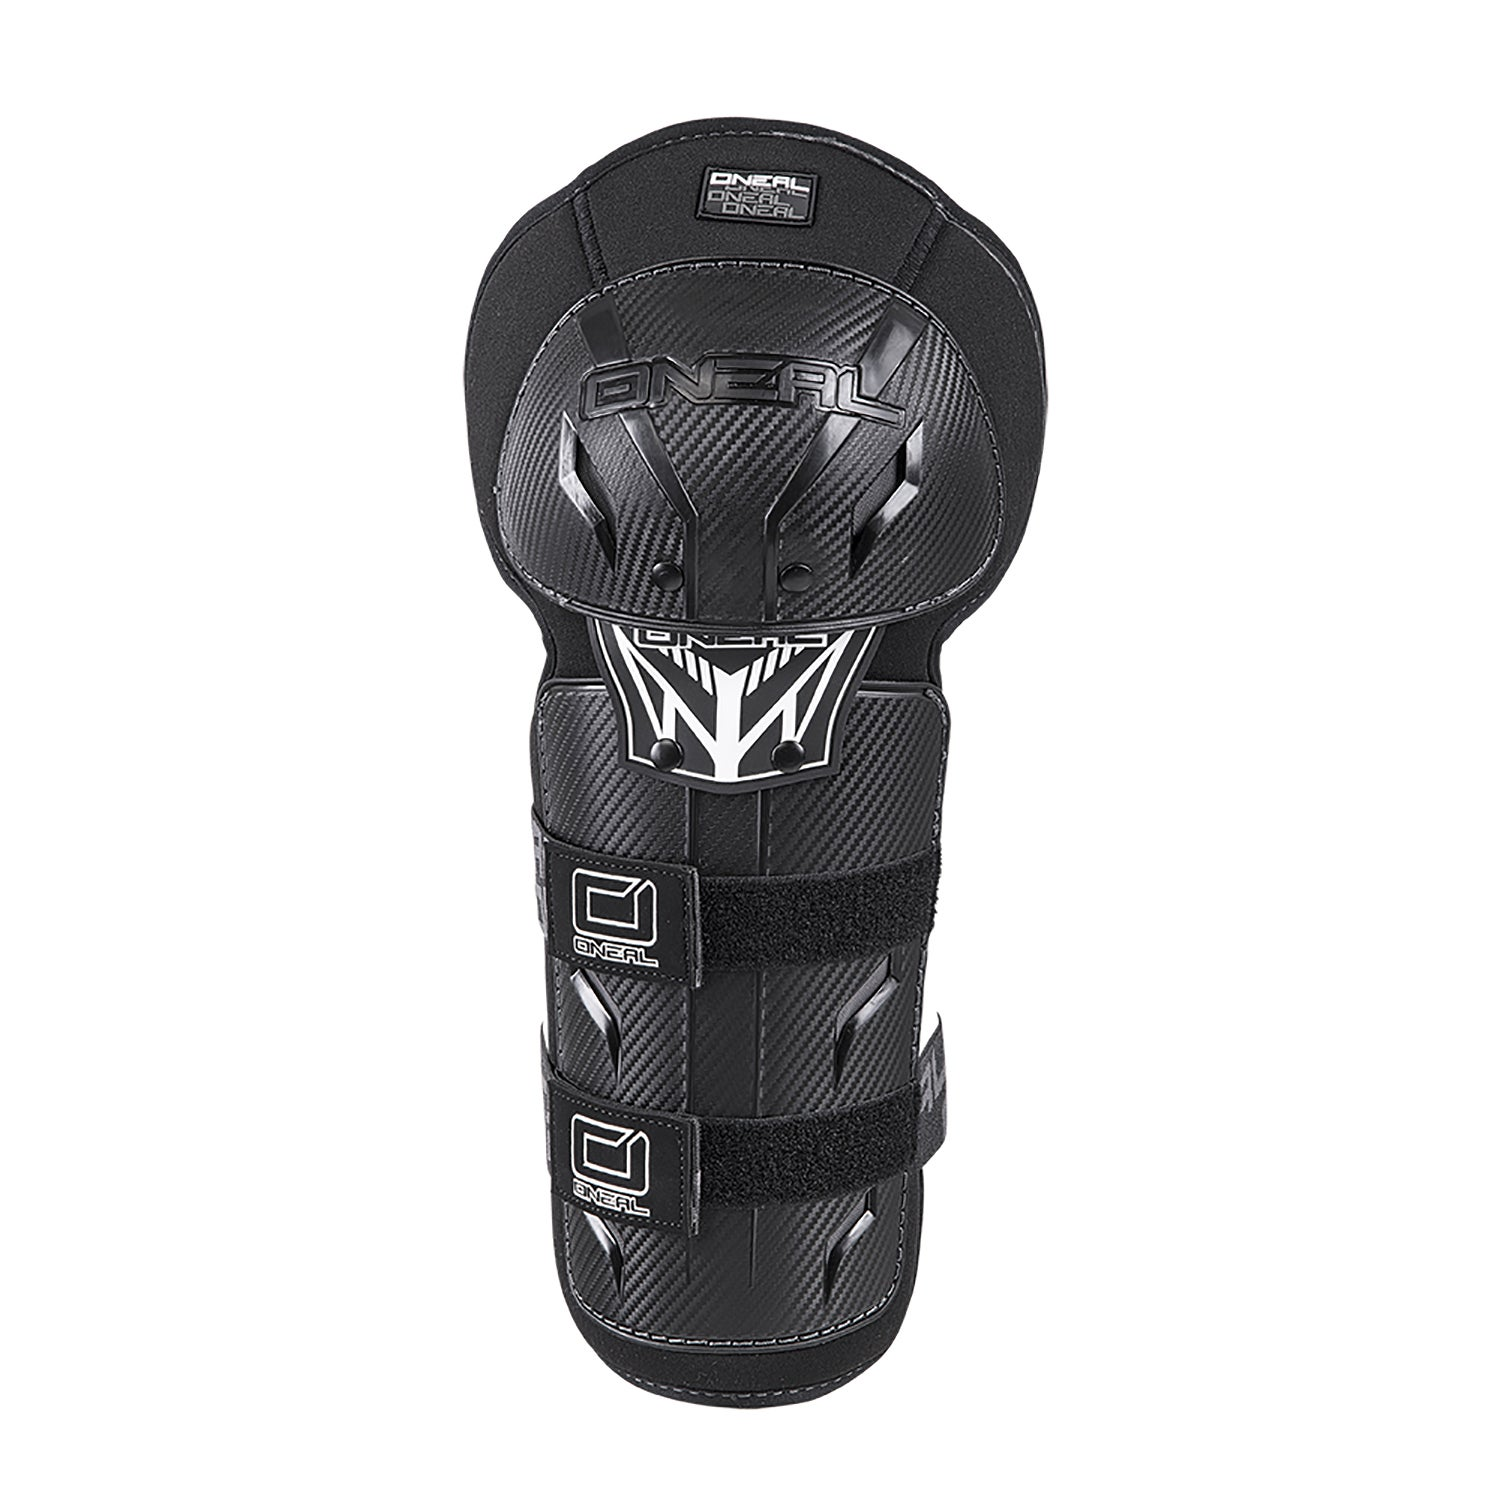 O Neal Pro Iii Carbon Look Knee Guard Knee Protection